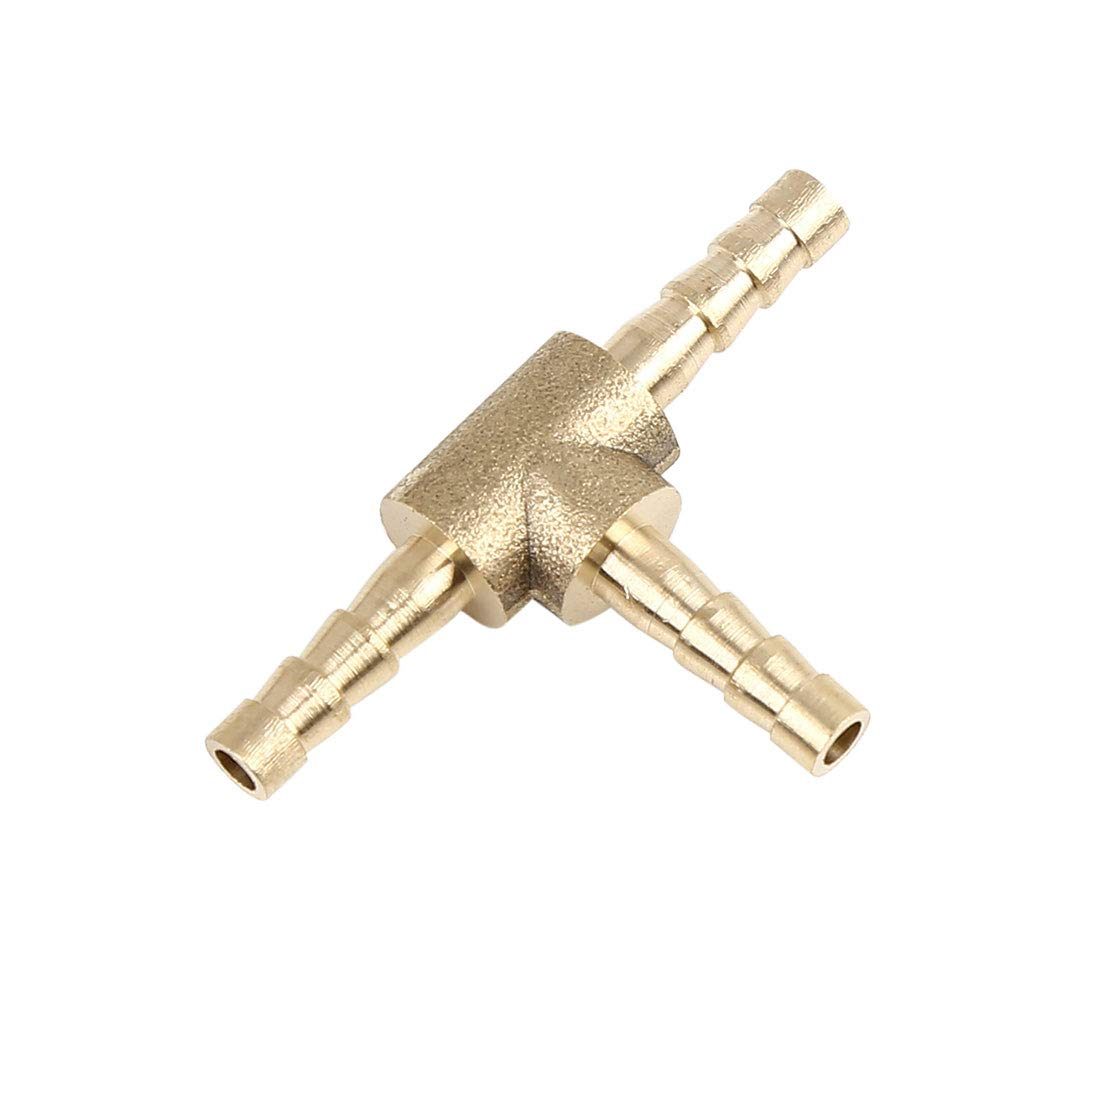 X AUTOHAUX 4mm Hose Barb Brass Joiner Tee 3 Way Adaptor for Air Water Oil Pipe